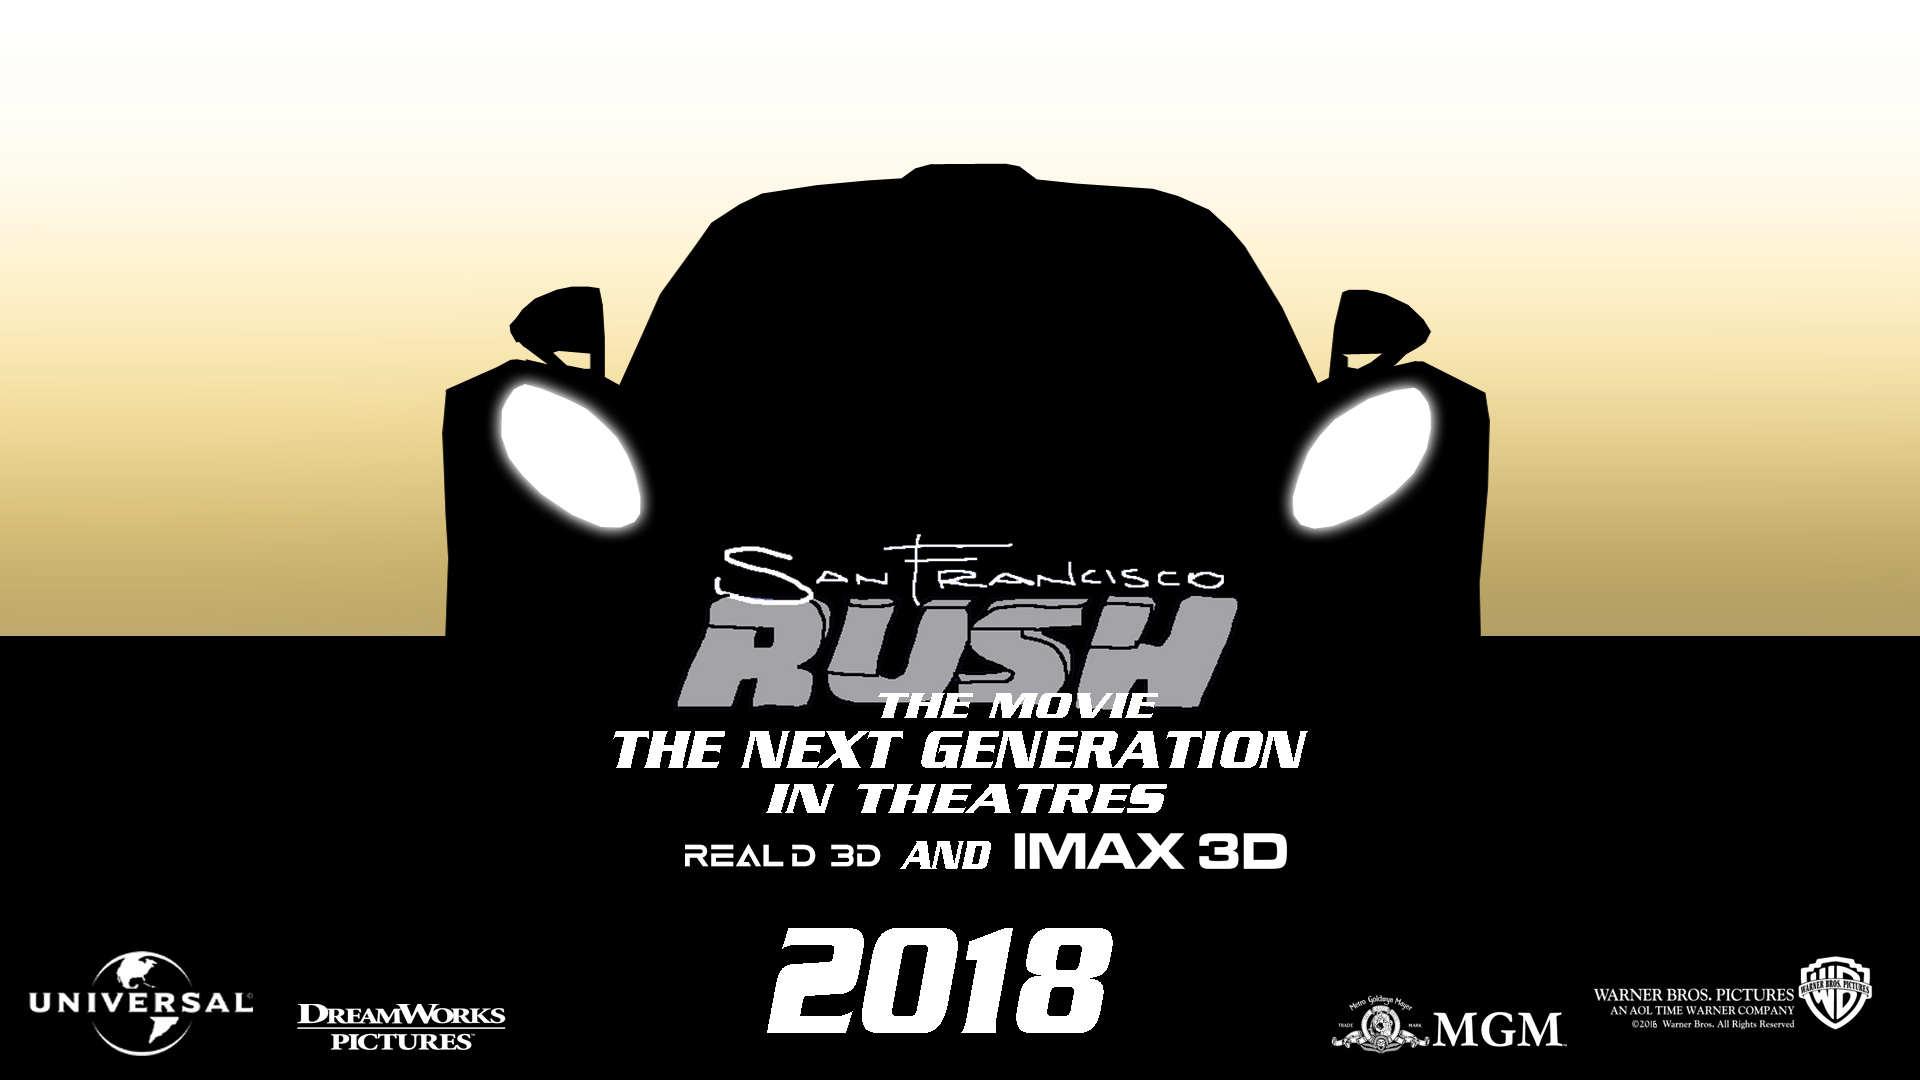 San Francisco Rush The Movie The Next Generation Movie Poster Teaser by Rainbow-Dash-Rockz